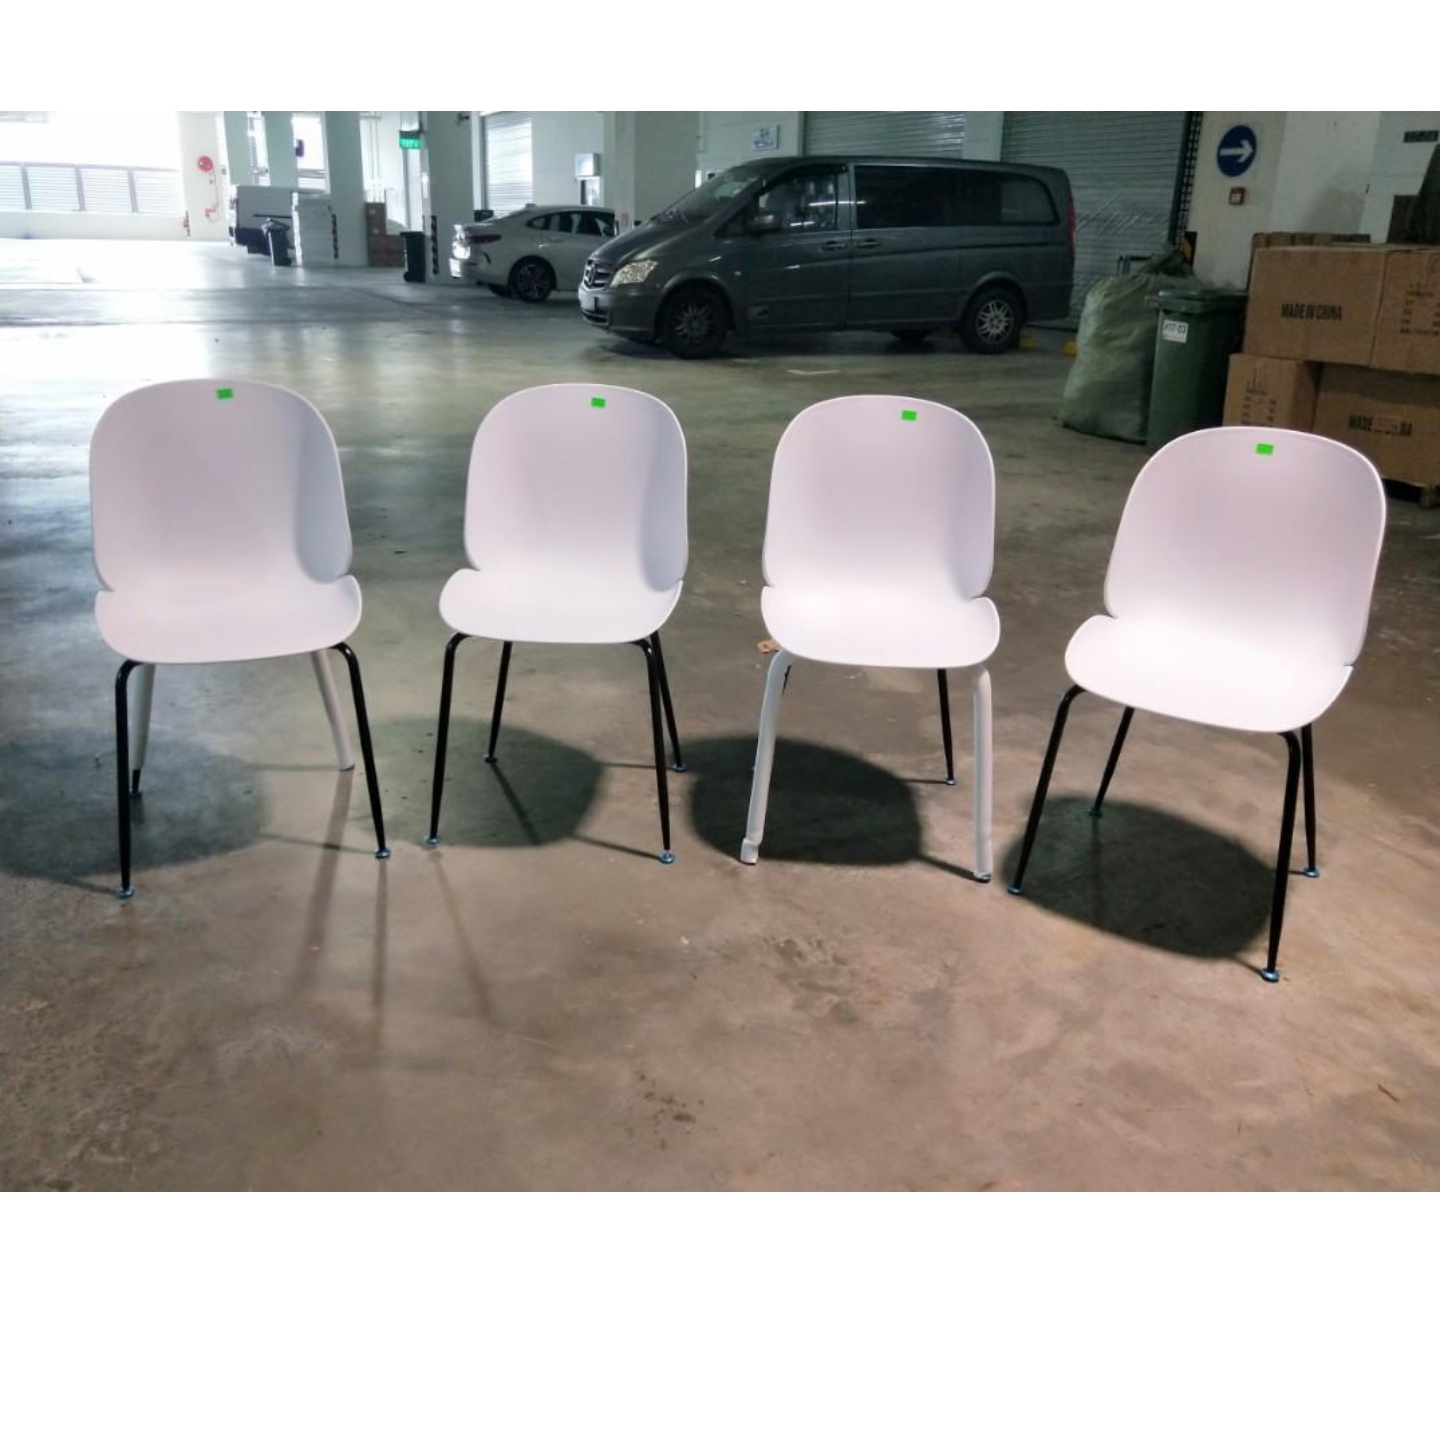 4 x IZZY Designer Replica Chairs in WHITE